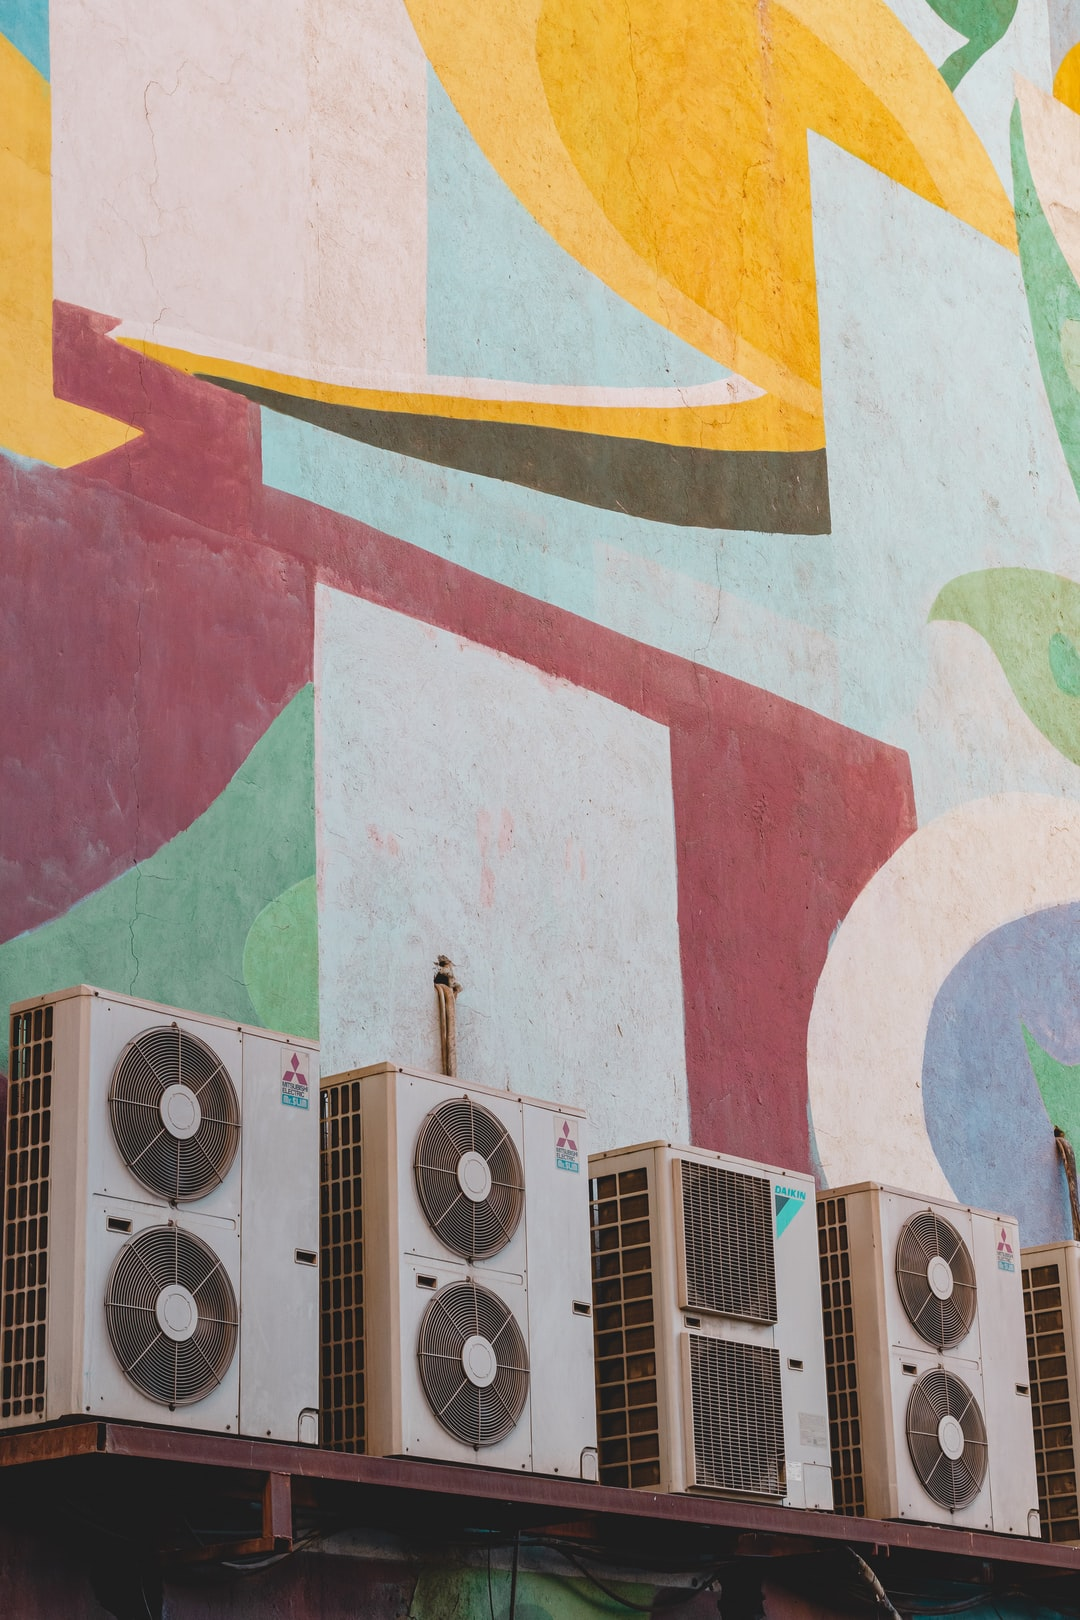 Patterns of the wall of the Bahman cinema and a row of split air conditioners.